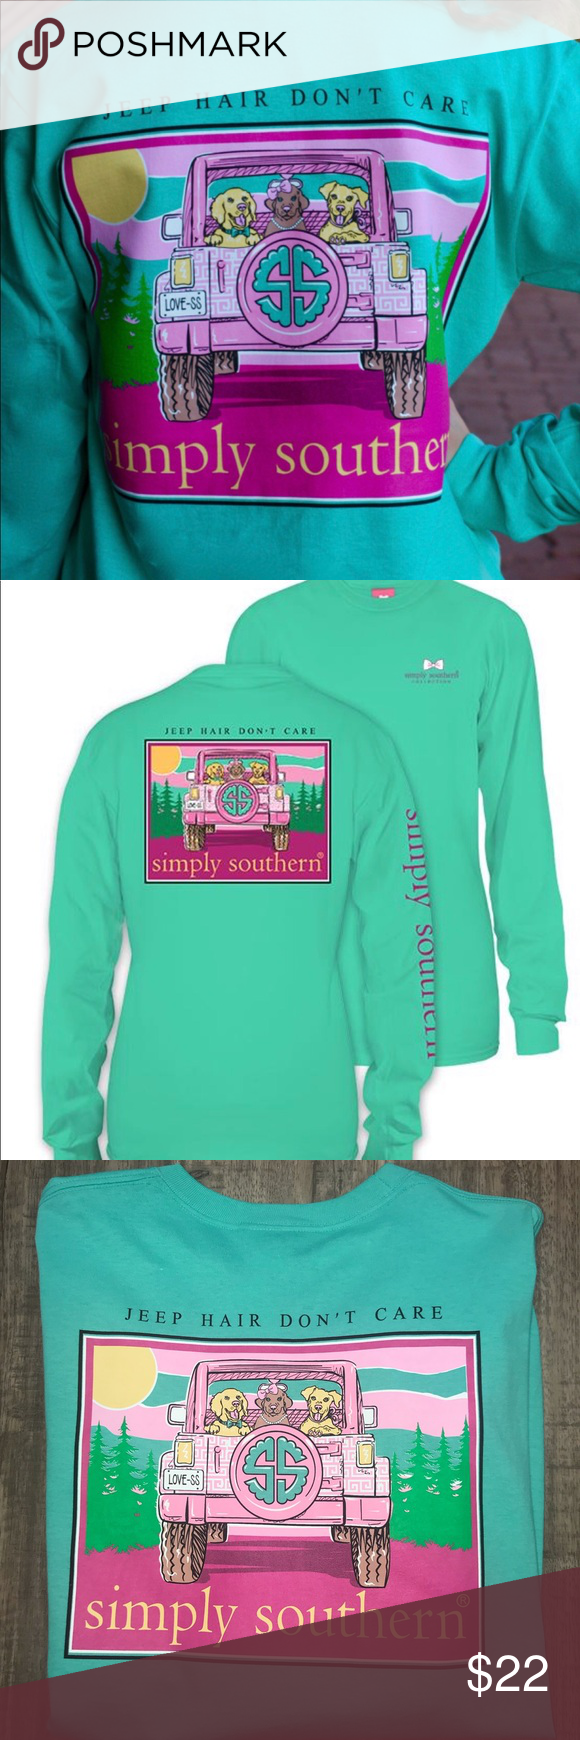 3e93aca1 Simply Southern Jeep Hair Don't Care Pink Tee Super cute pink Jeep tee from Simply  Southern... Jeep Hair Don't Care! Long sleeve, 100% comfy cotton. Women's  ...